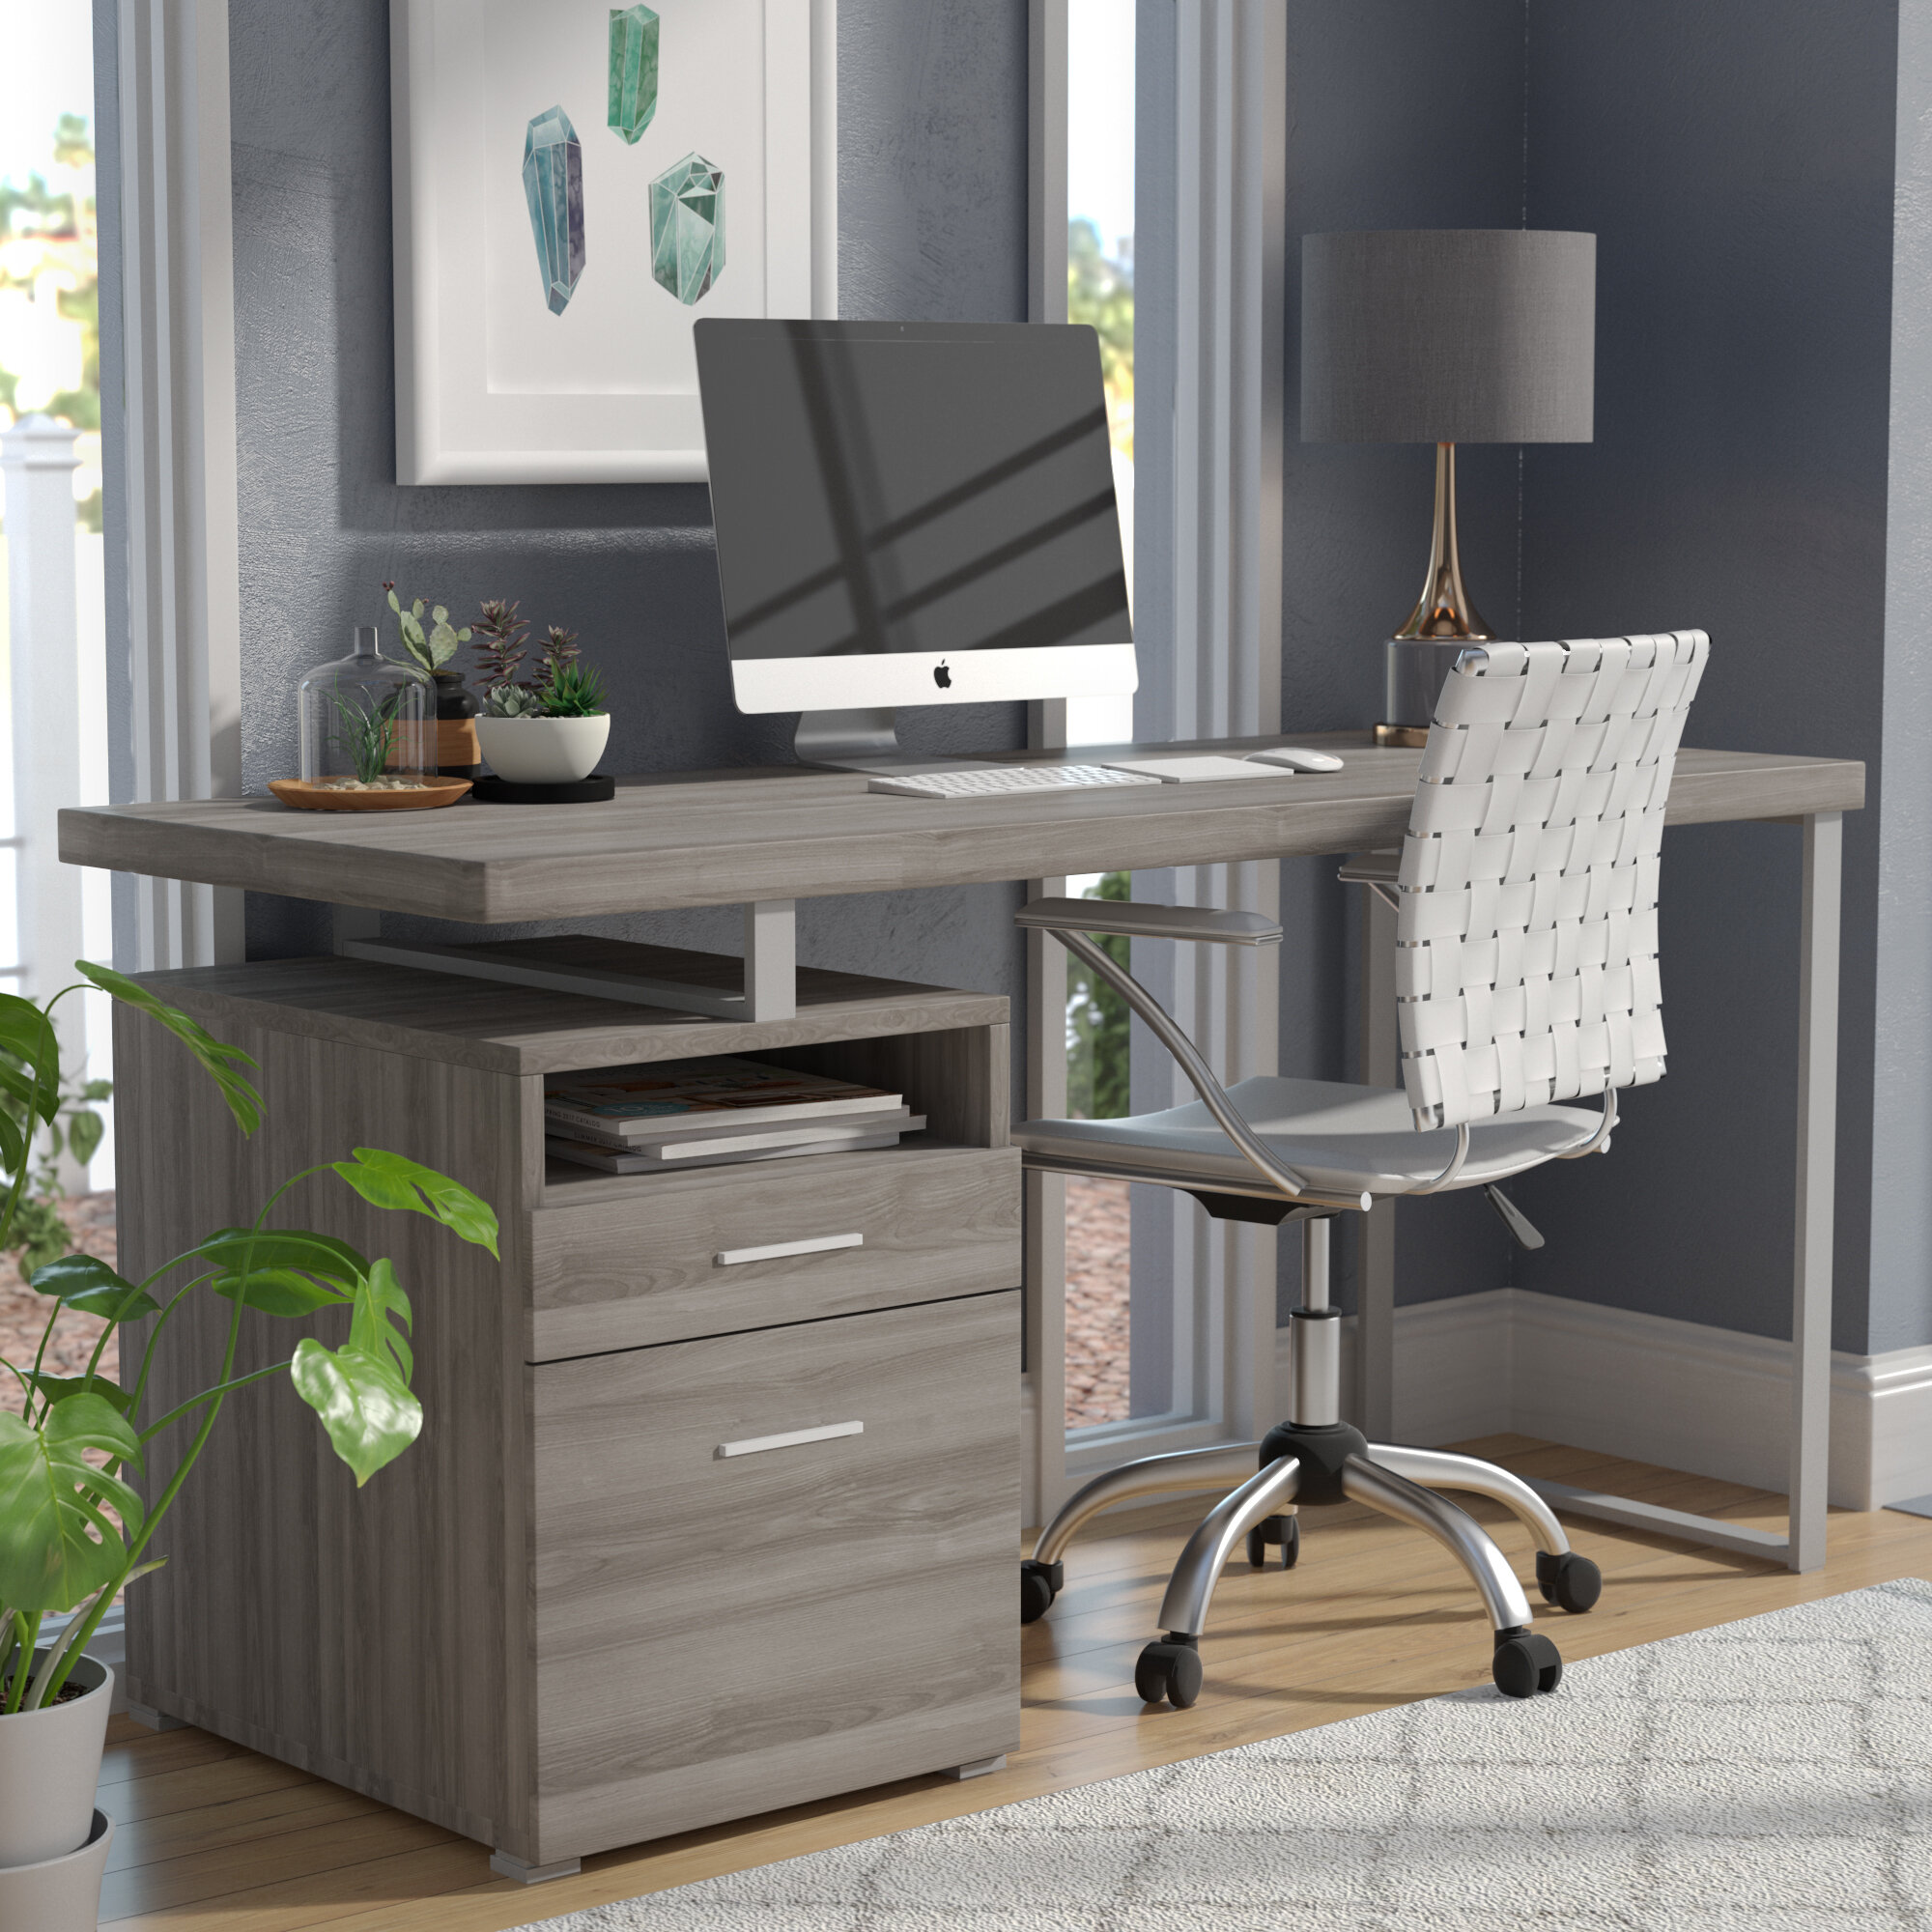 discount office with gray on black of chairs size fluffy leather full for computer seat cheap white desk modern headrest big stool chair sale posture